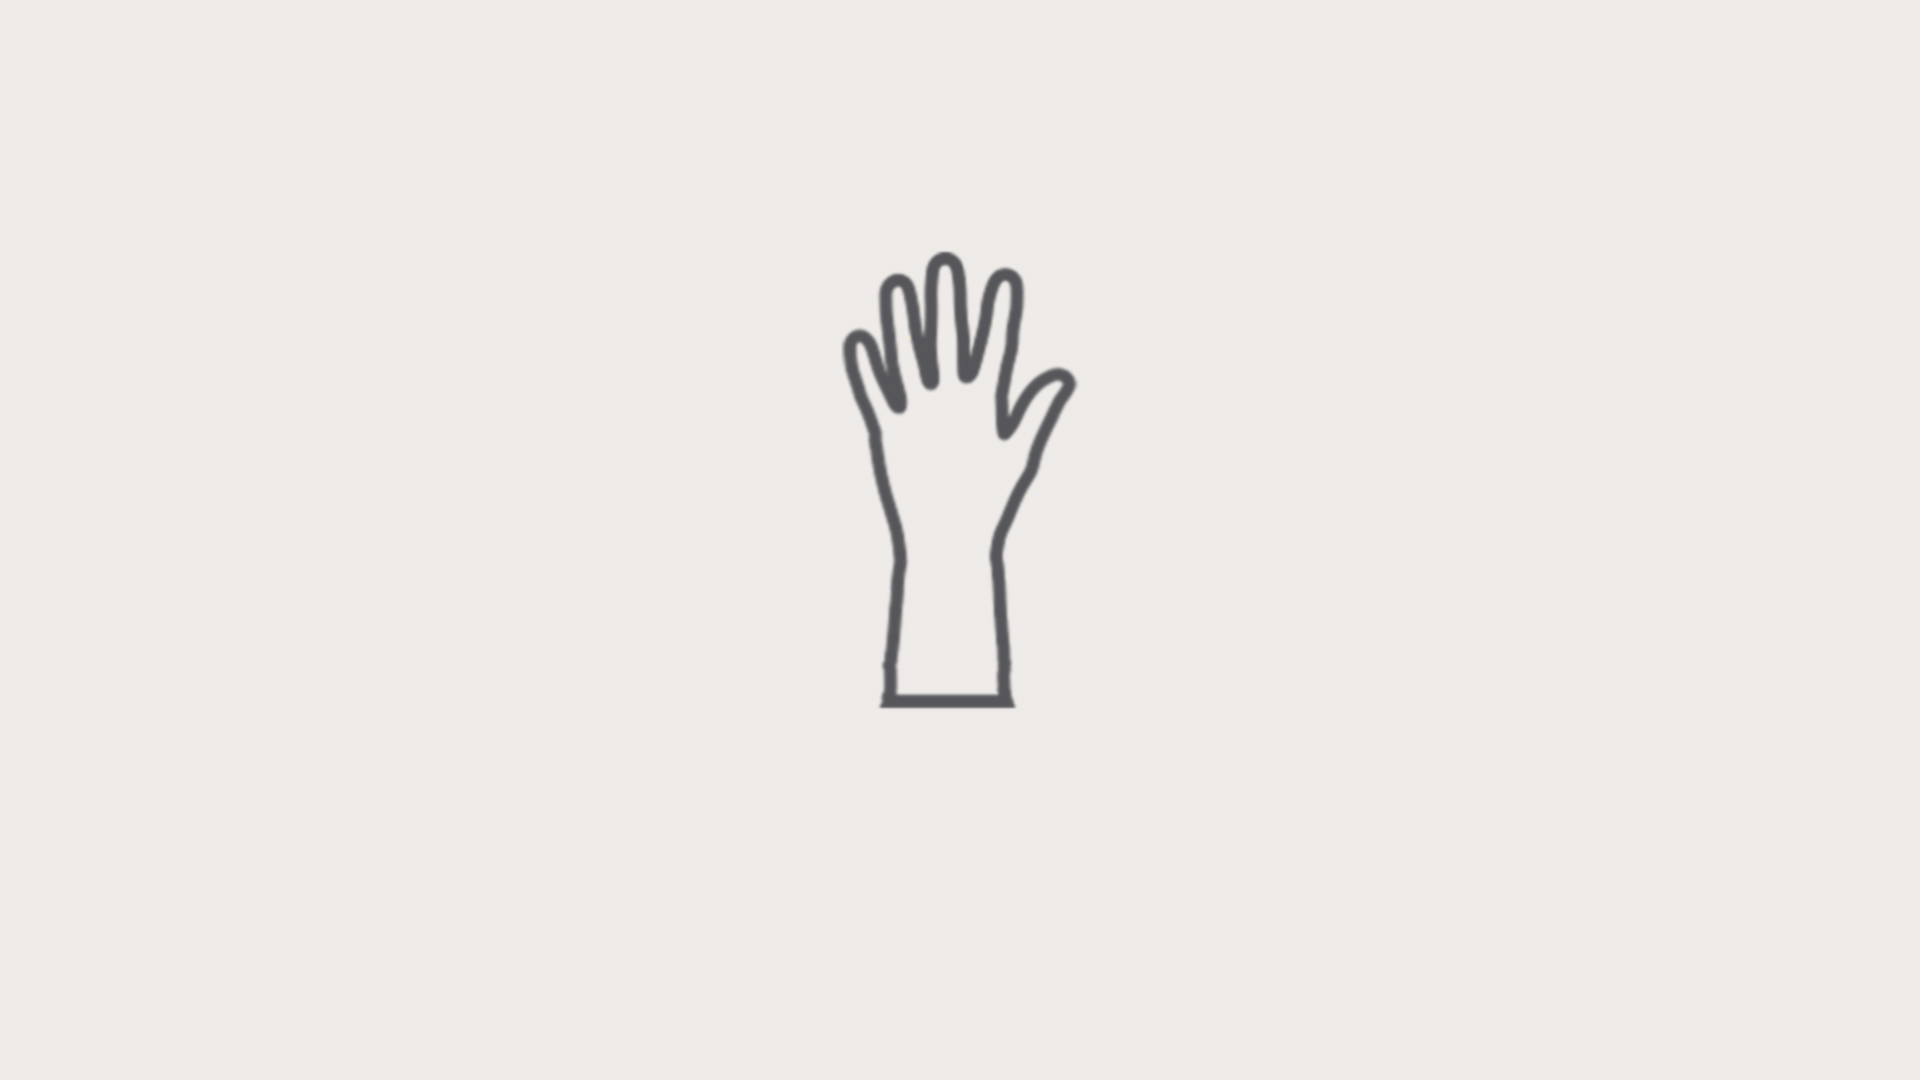 wear-gloves-icon.jpg